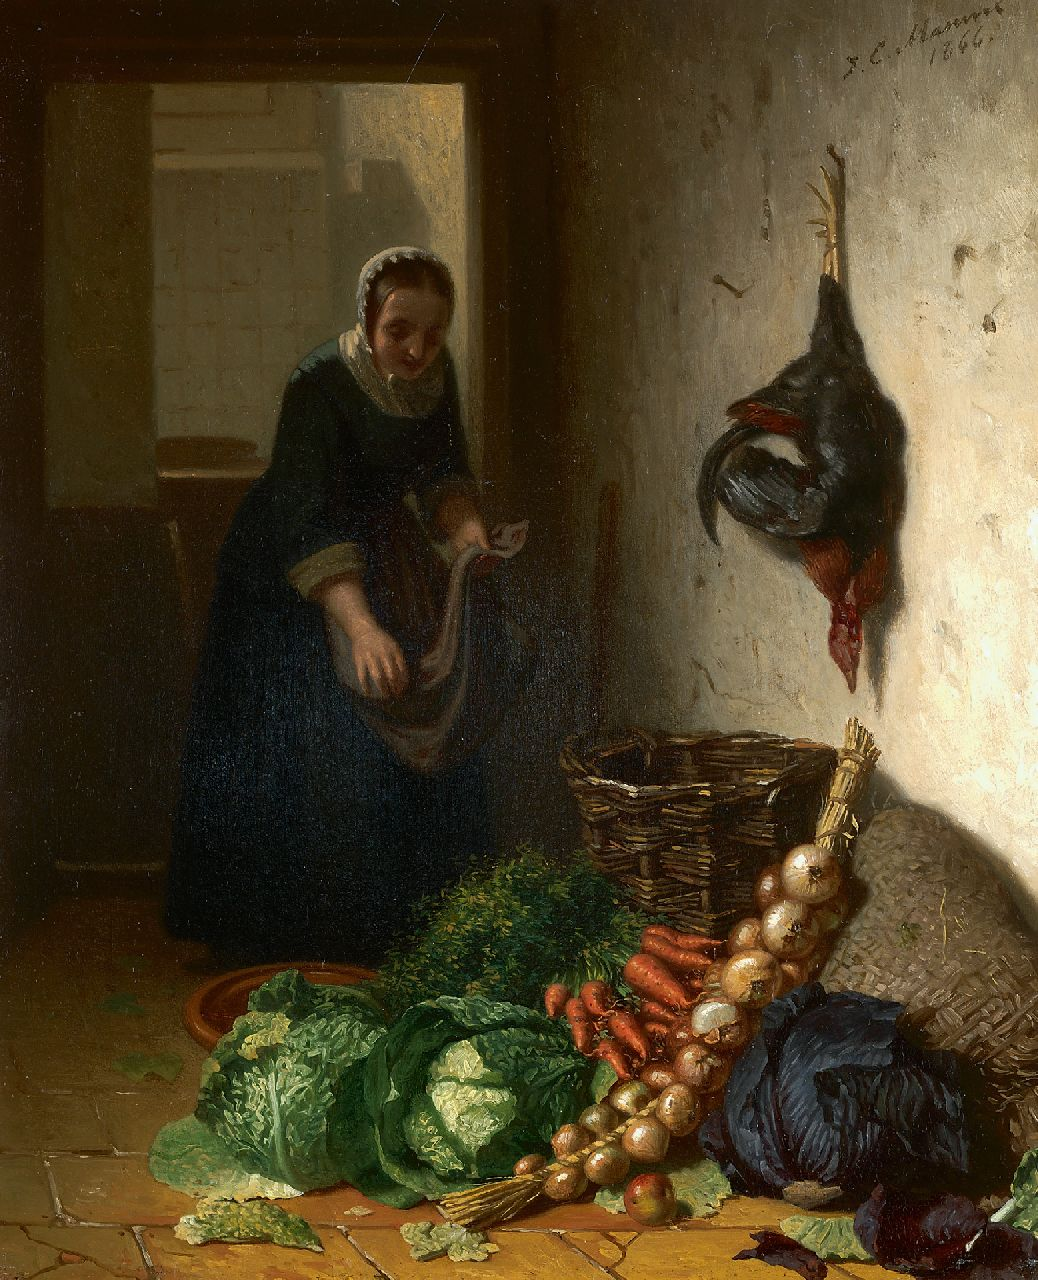 Masurel J.E.  | Johannes Engel Masurel | Paintings offered for sale | In the kitchen, oil on panel 31.2 x 25.3 cm, signed u.r. and dated 1866